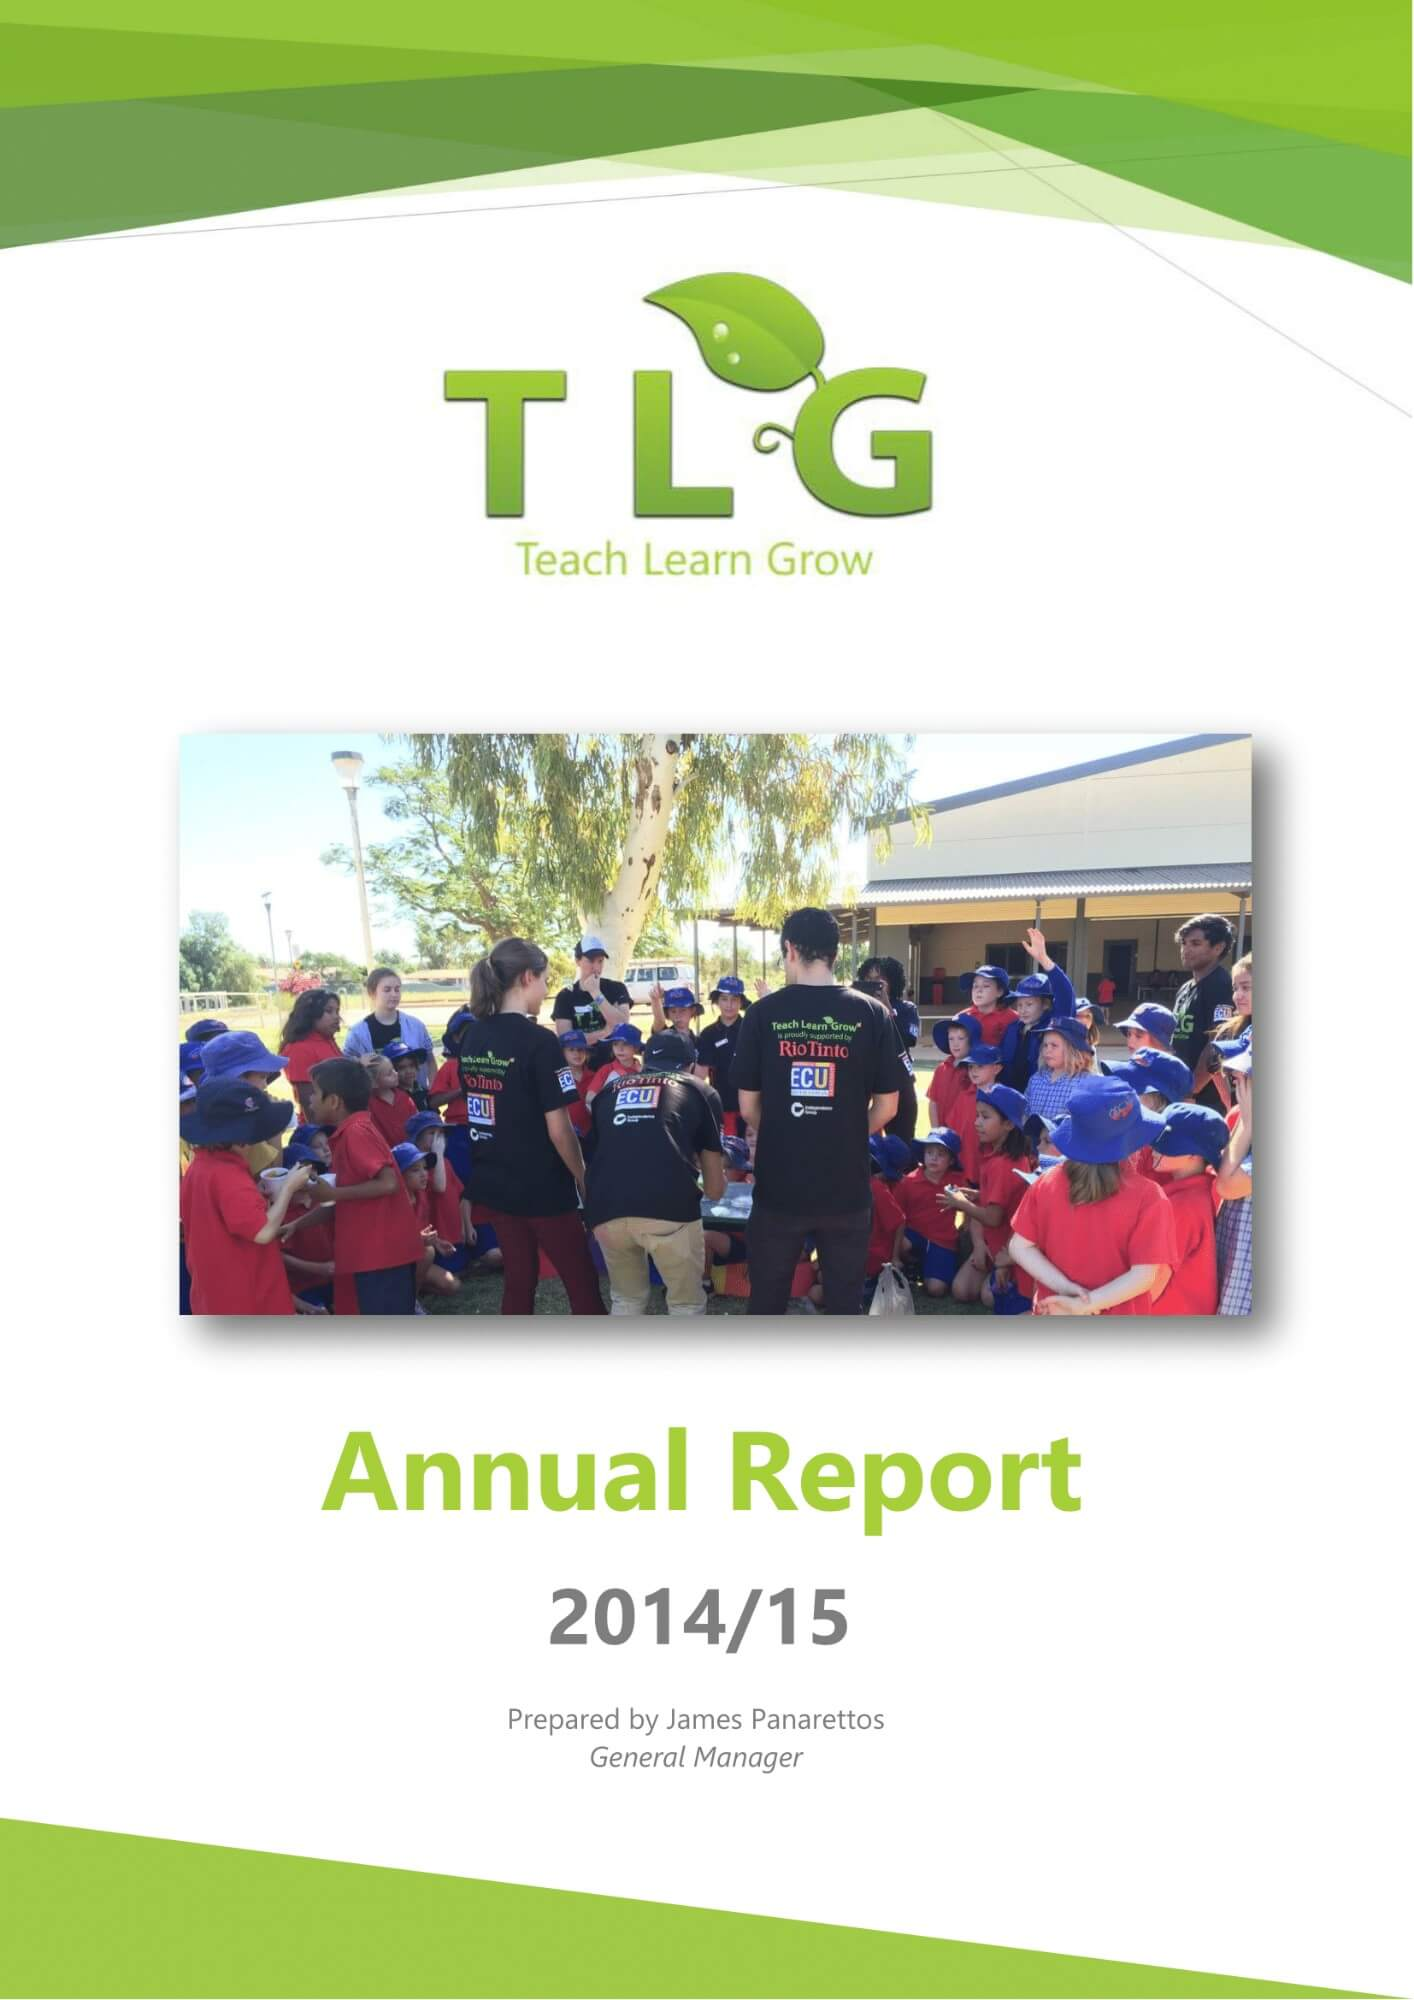 tlg-annual-report-FY14-01.jpg